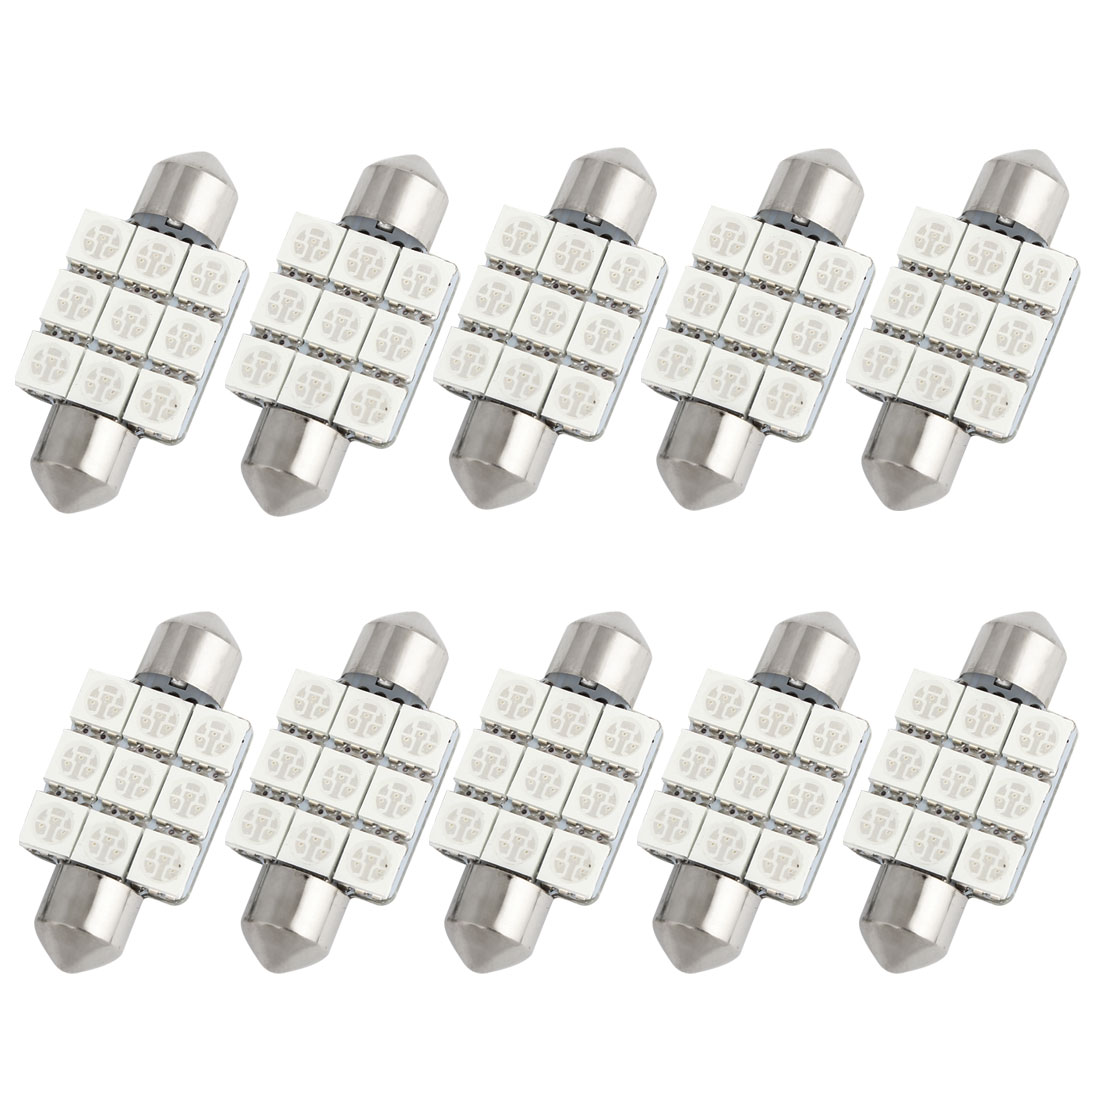 10pcs 36mm Blue 9 LED 5050 SMD Festoon Dome Light Lamp DC 12V 6418 6413 Internal